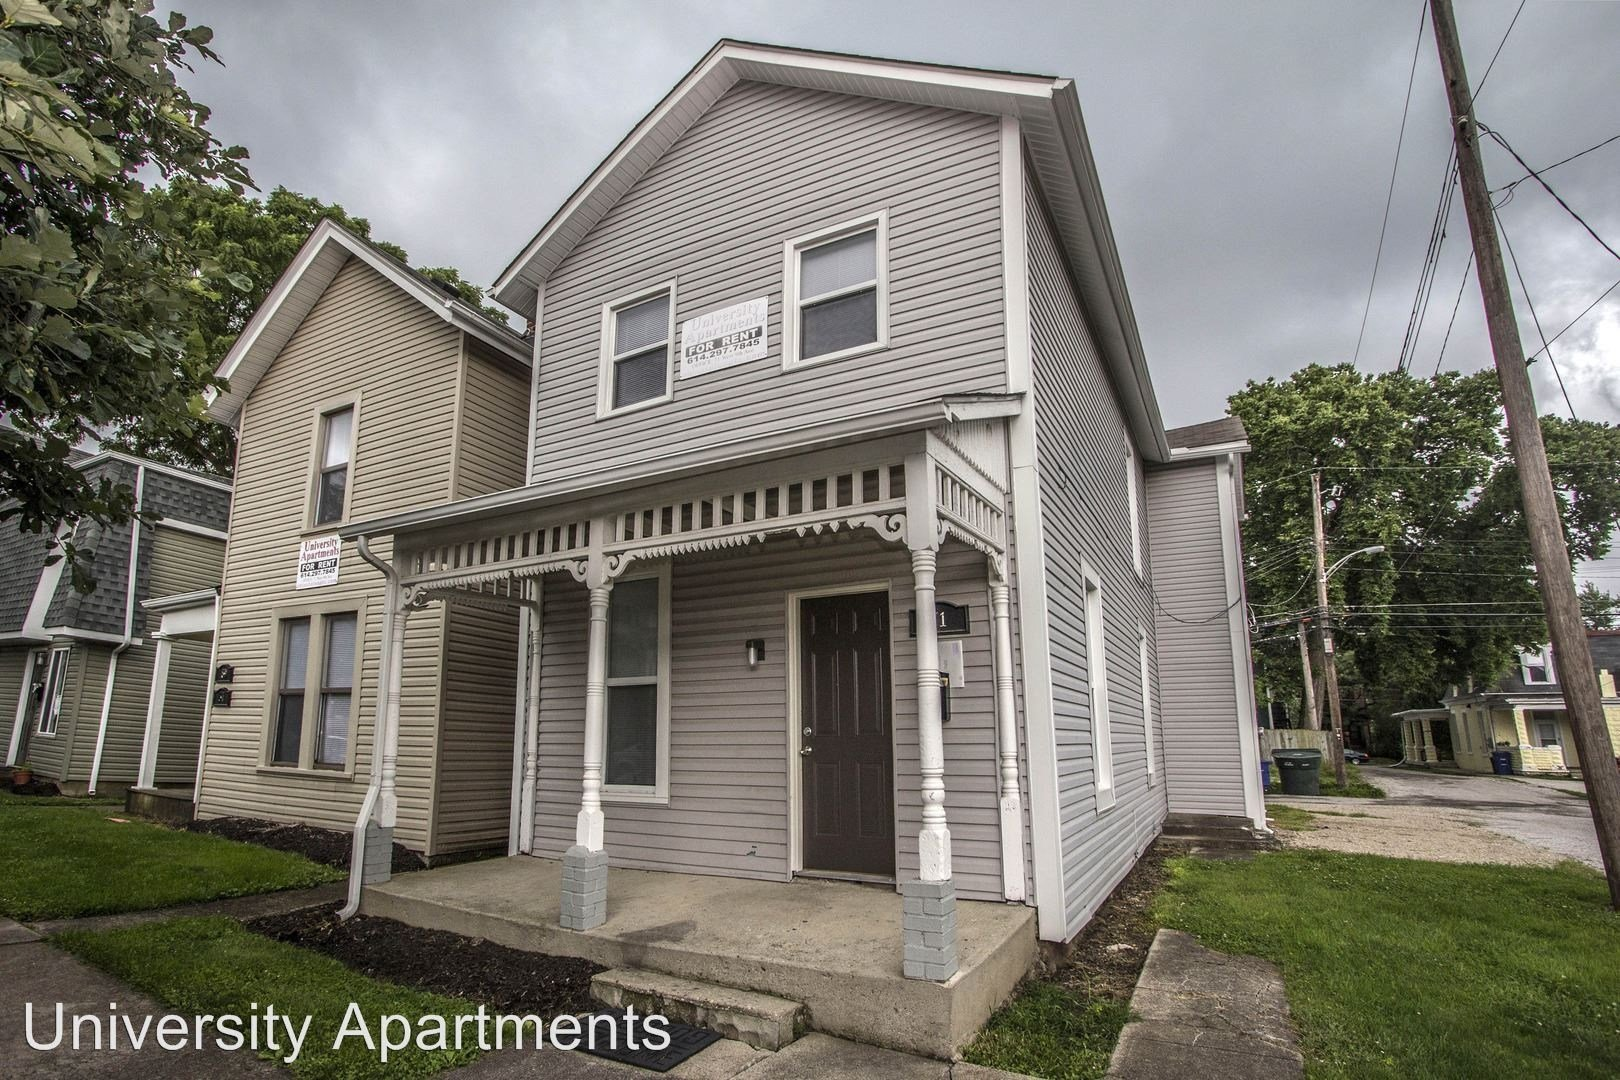 Best 71 Mcmillen Ave Columbus Oh 43201 3 Bedroom Apartment For Rent Padmapper With Pictures